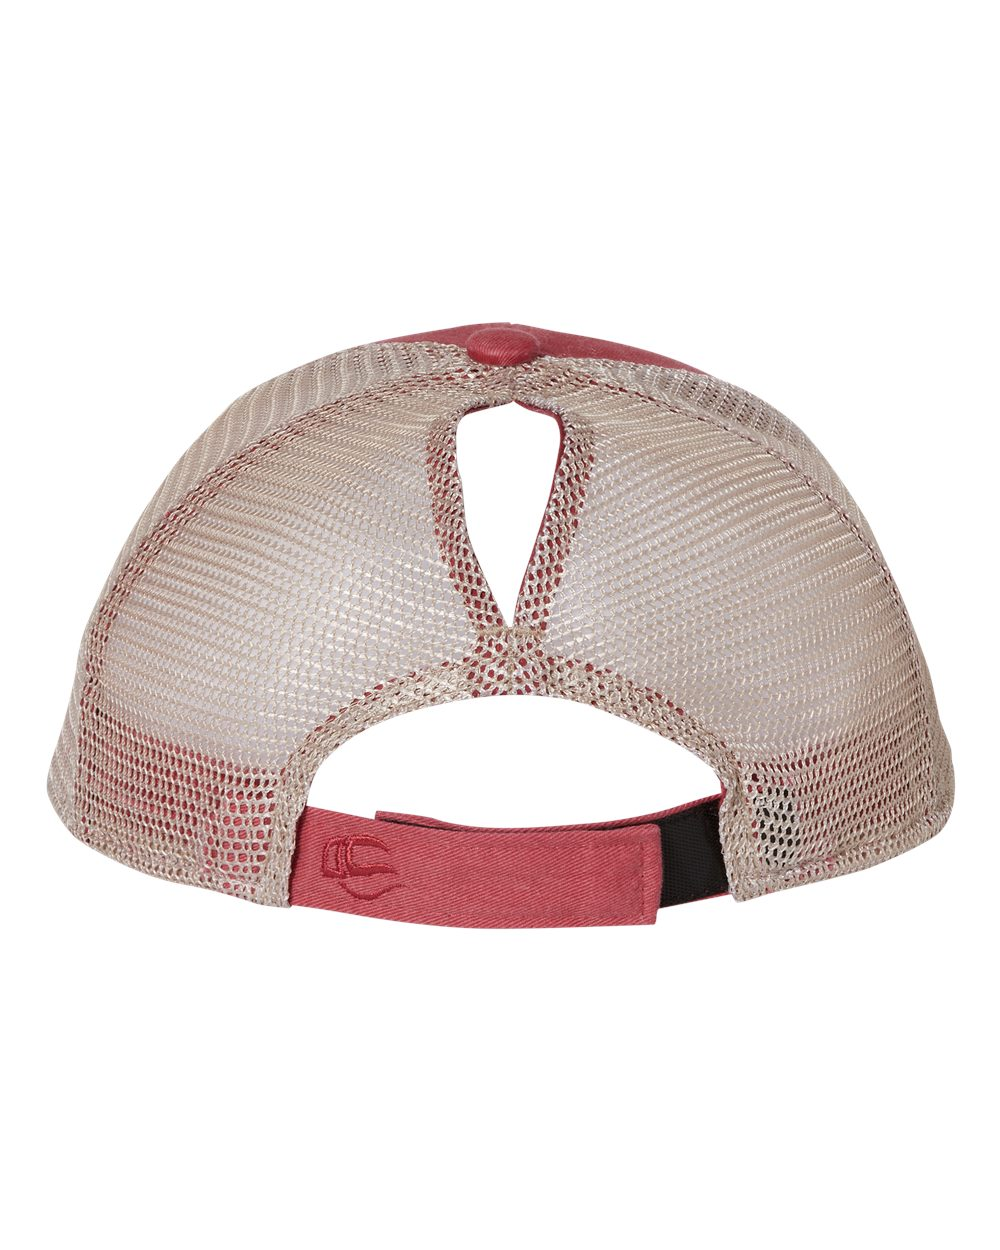 LAND OF THE LIVING Ponytail Mesh-Back Outdoor Cap Cap - PNY100M